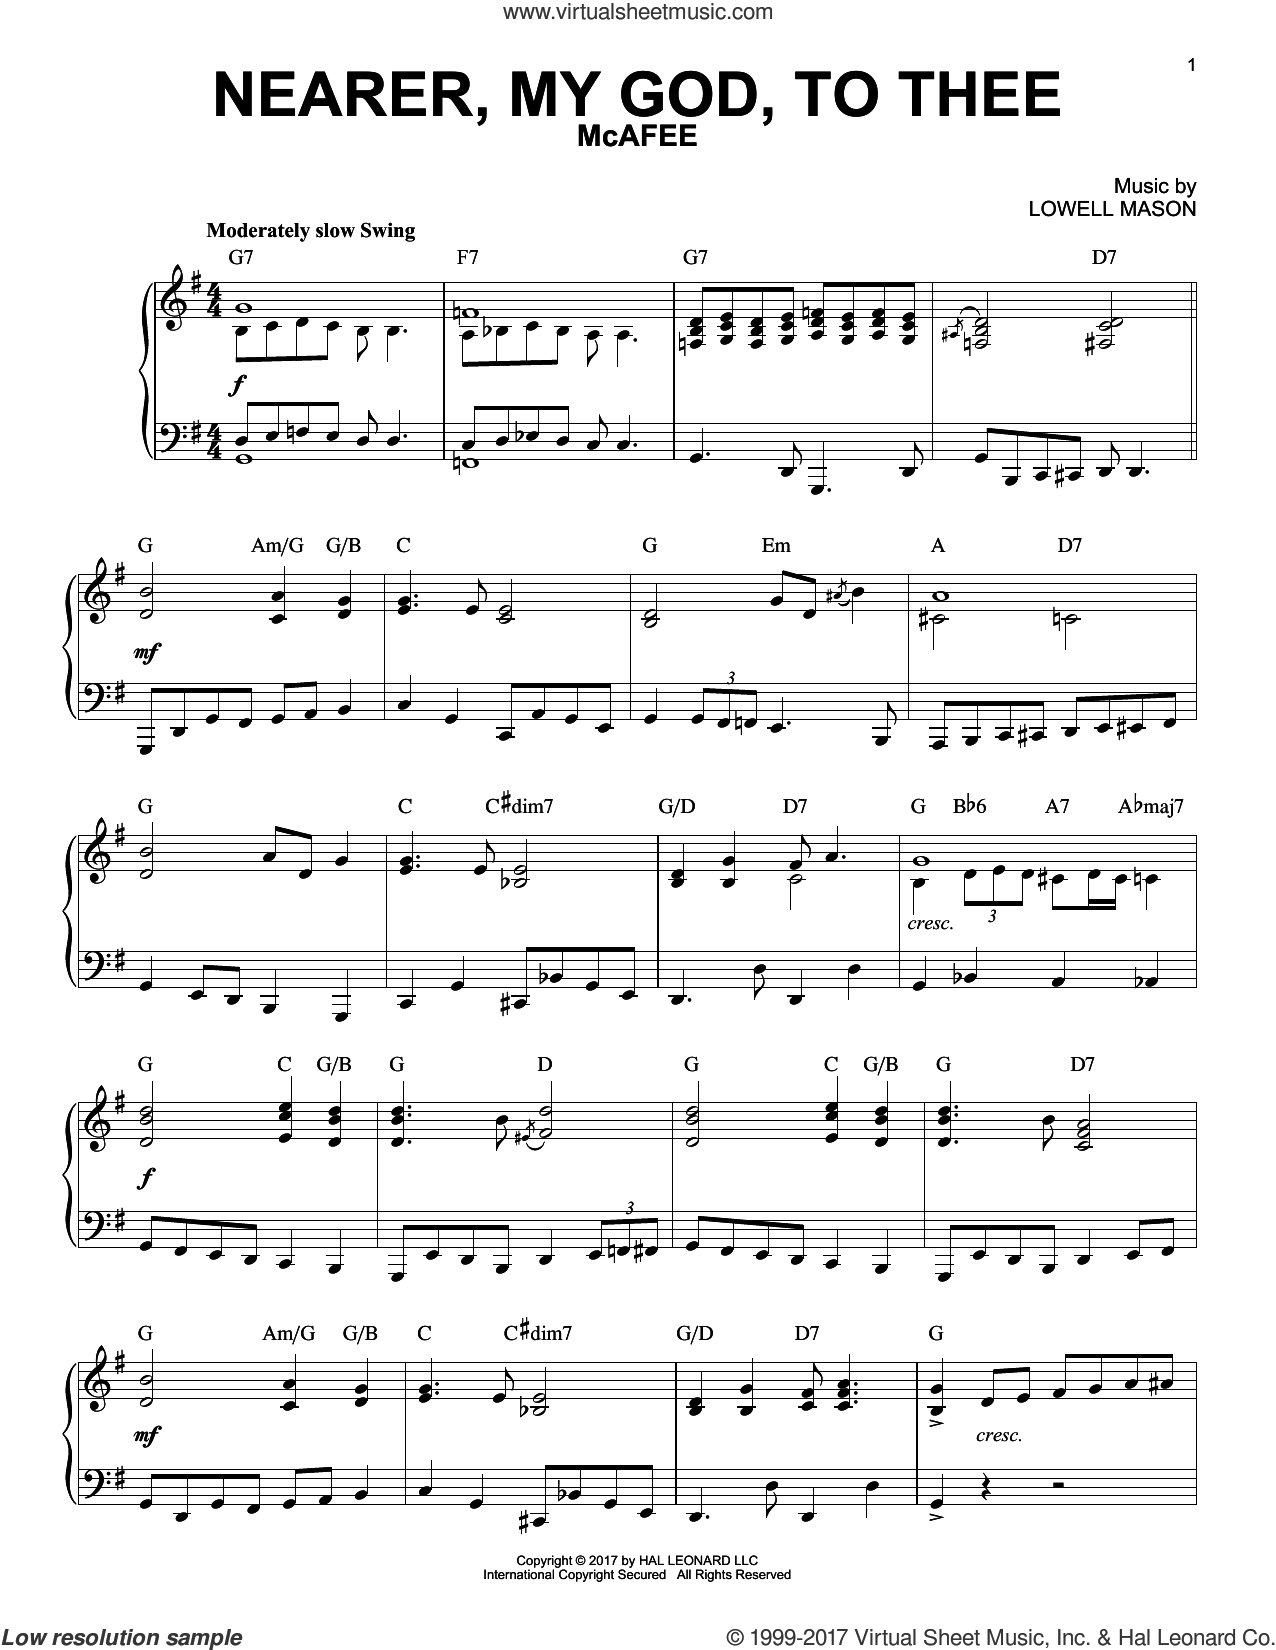 Nearer, My God, To Thee [Jazz version] sheet music for piano solo by Lowell Mason, Genesis 28:10-22 and Sarah F. Adams, intermediate skill level